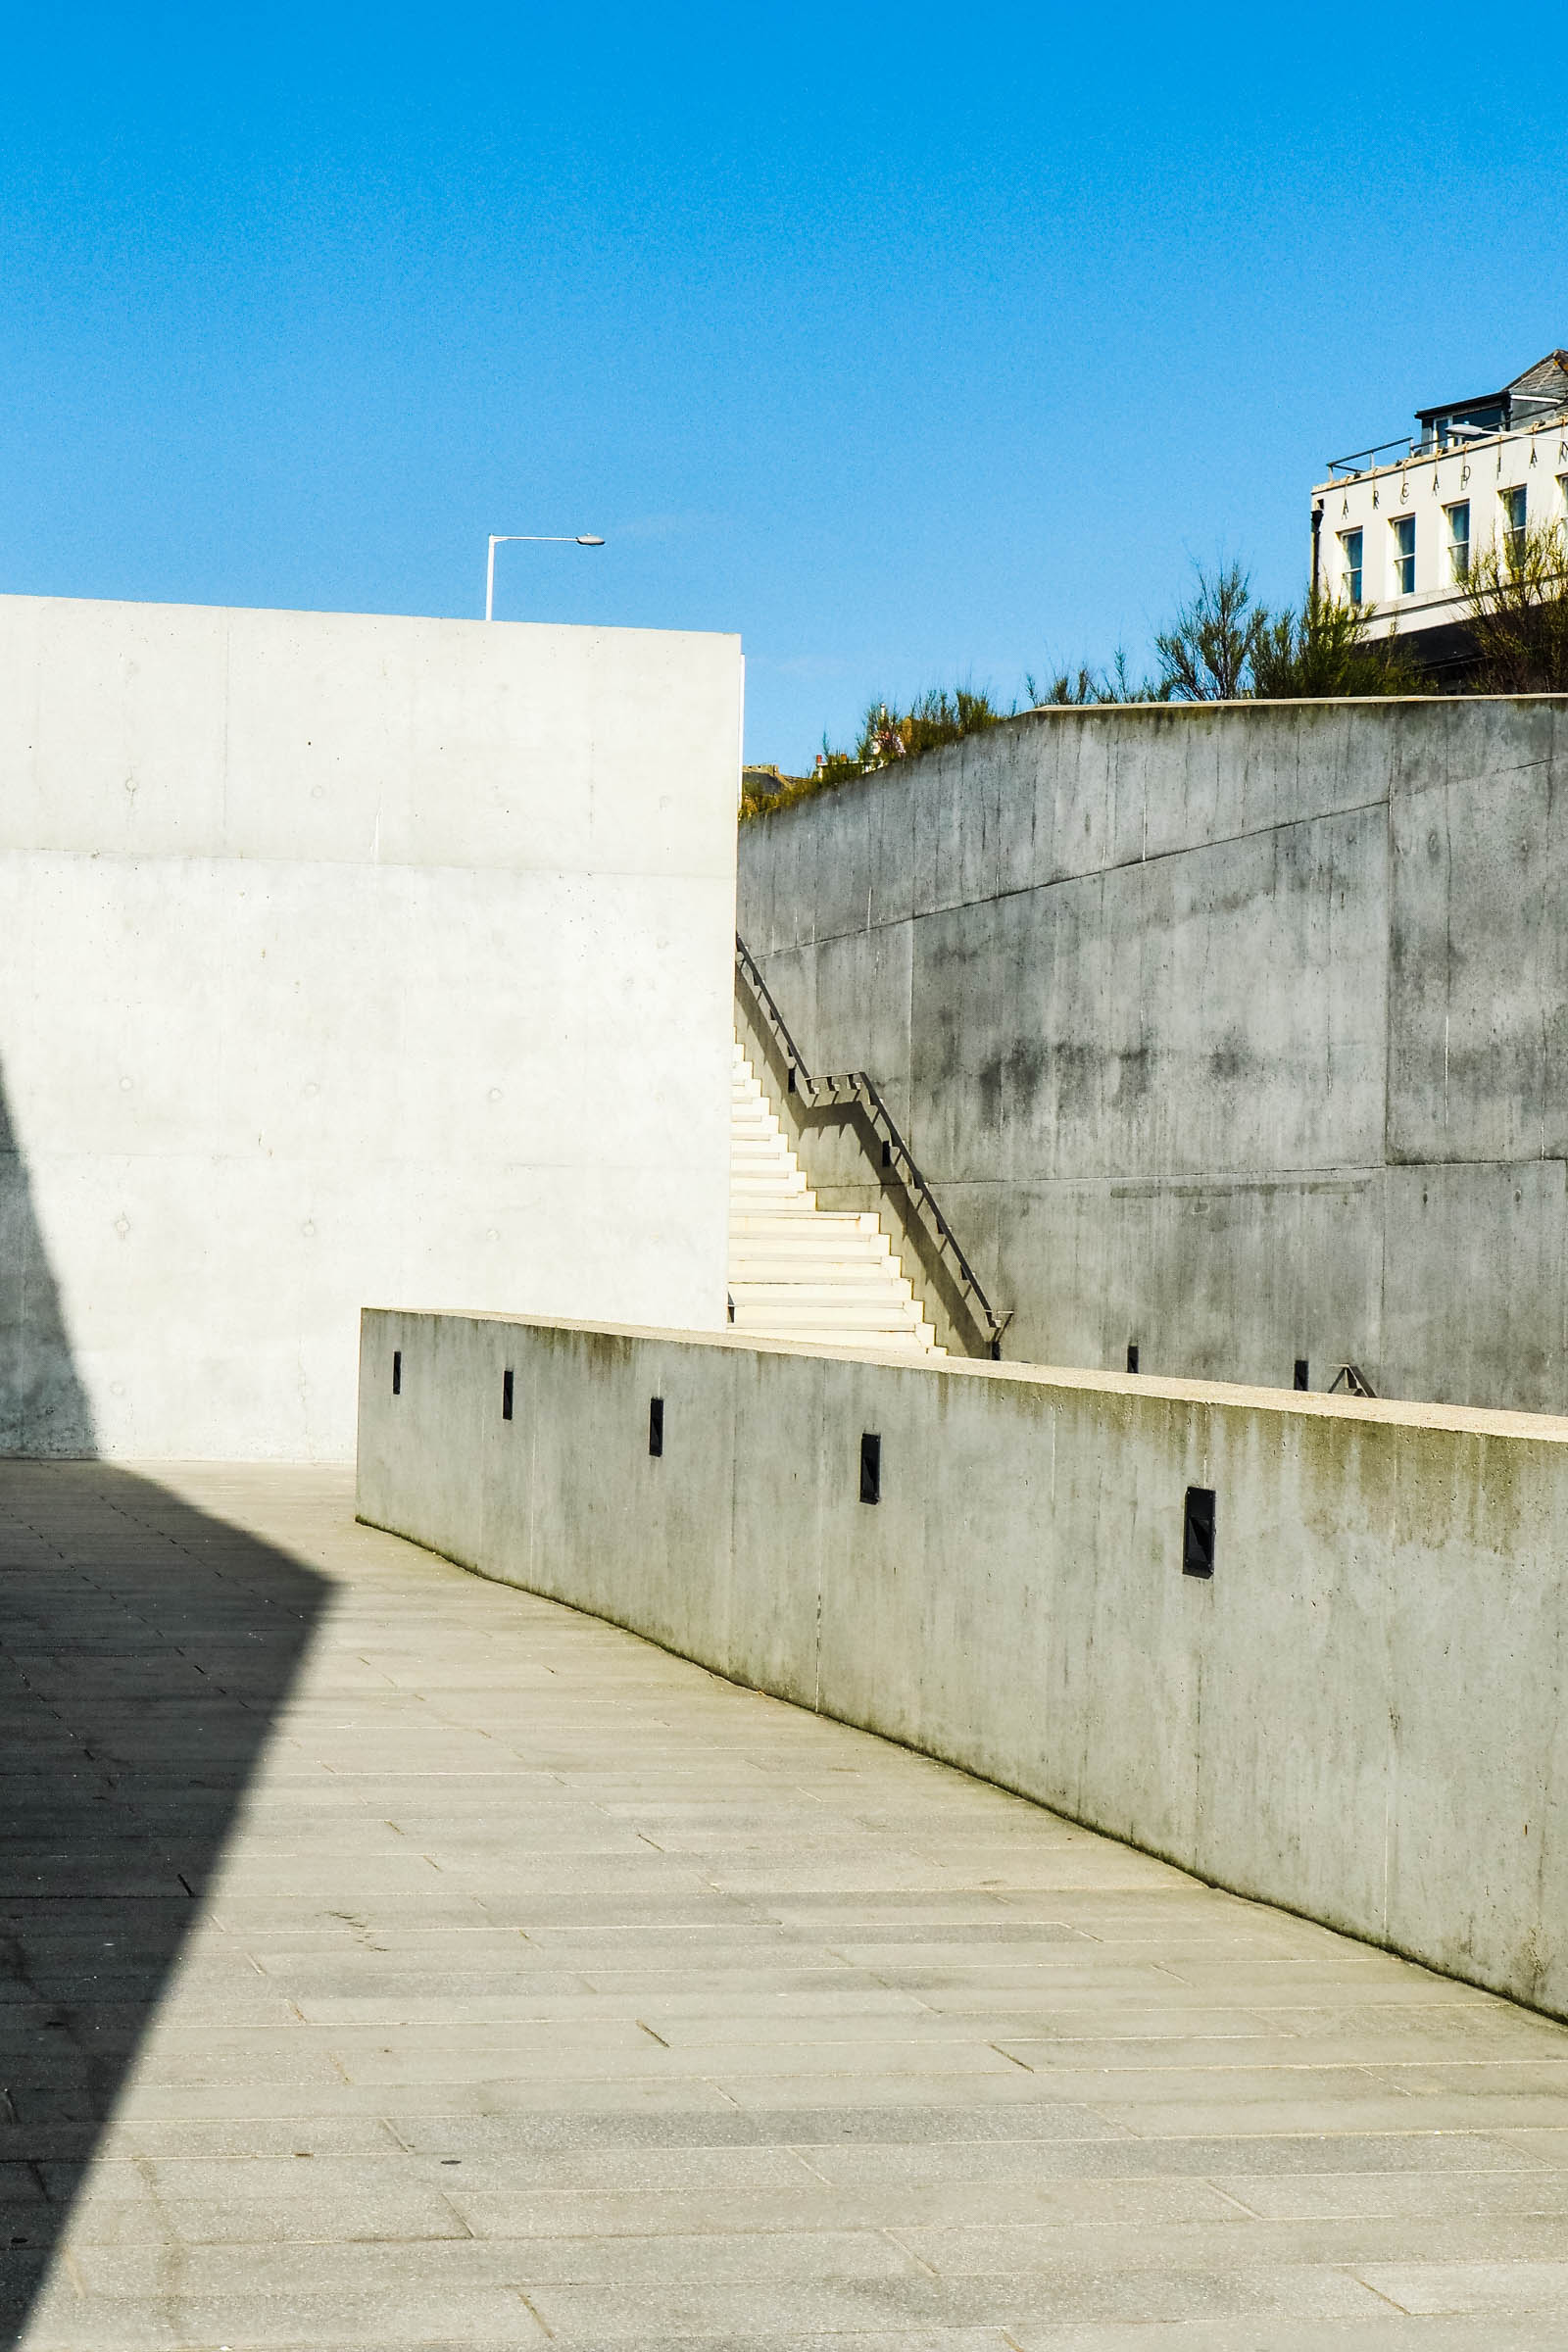 Visting the Turner contemporary in Margate